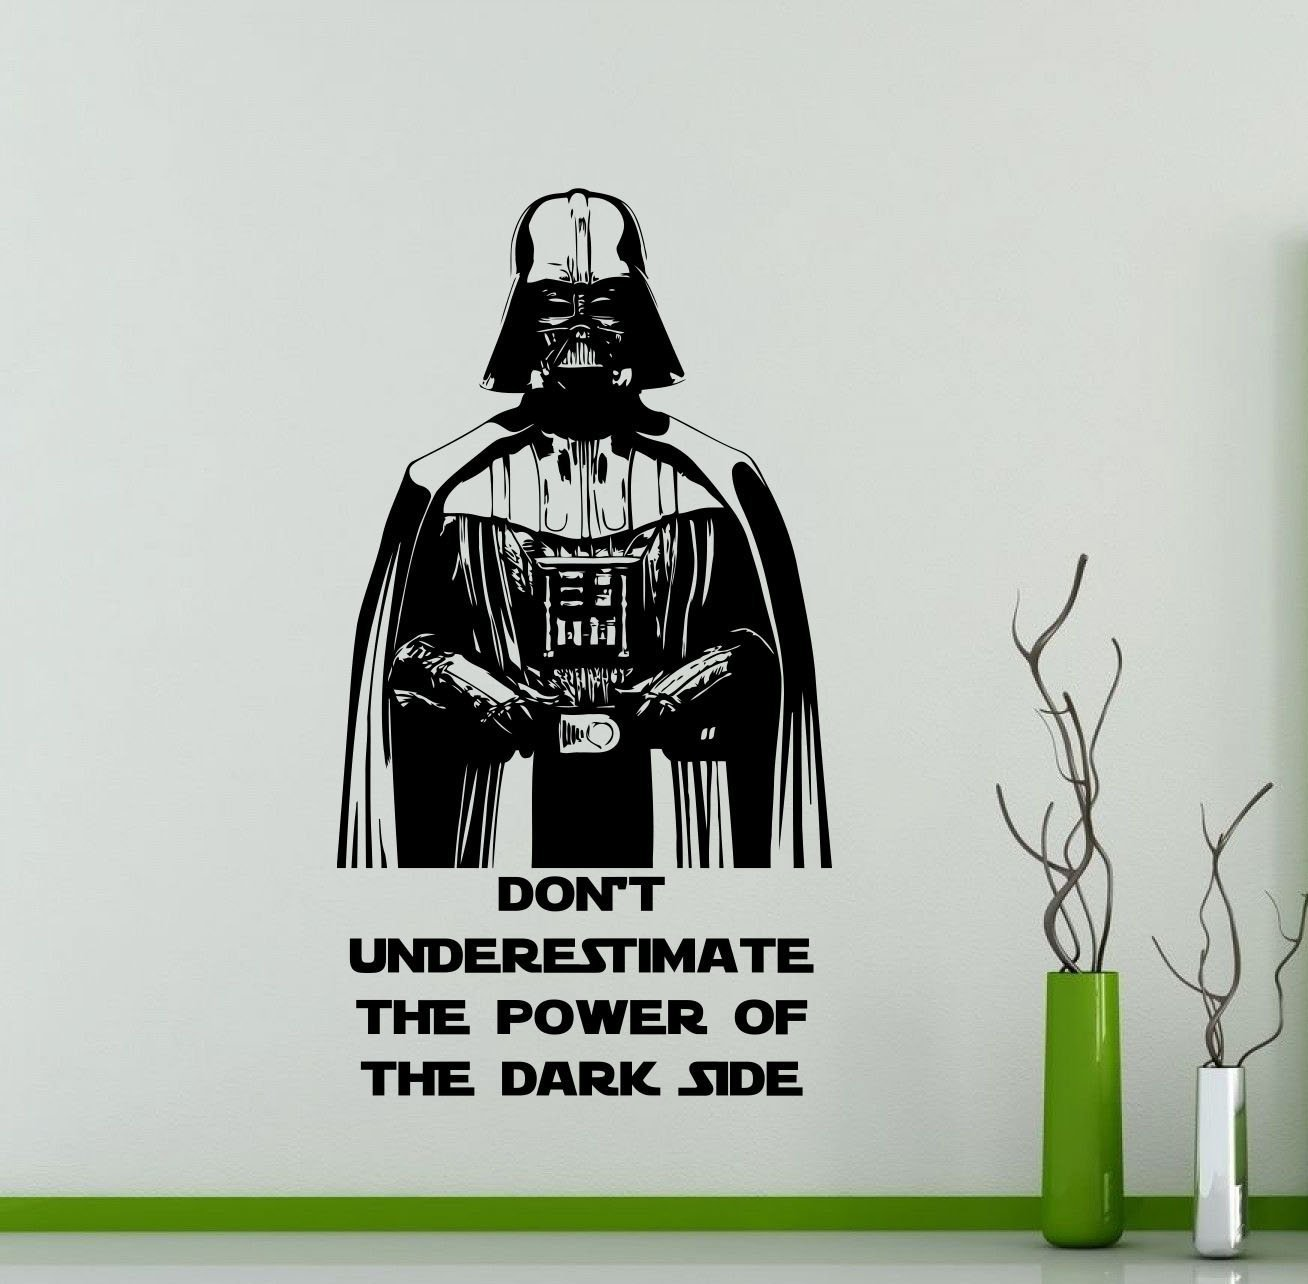 Star Wars Wall Decals Darth Vader Poster Don't Underestimate The Power Of The Dark Side Vinyl Sticker Home Teen Star Wars Character